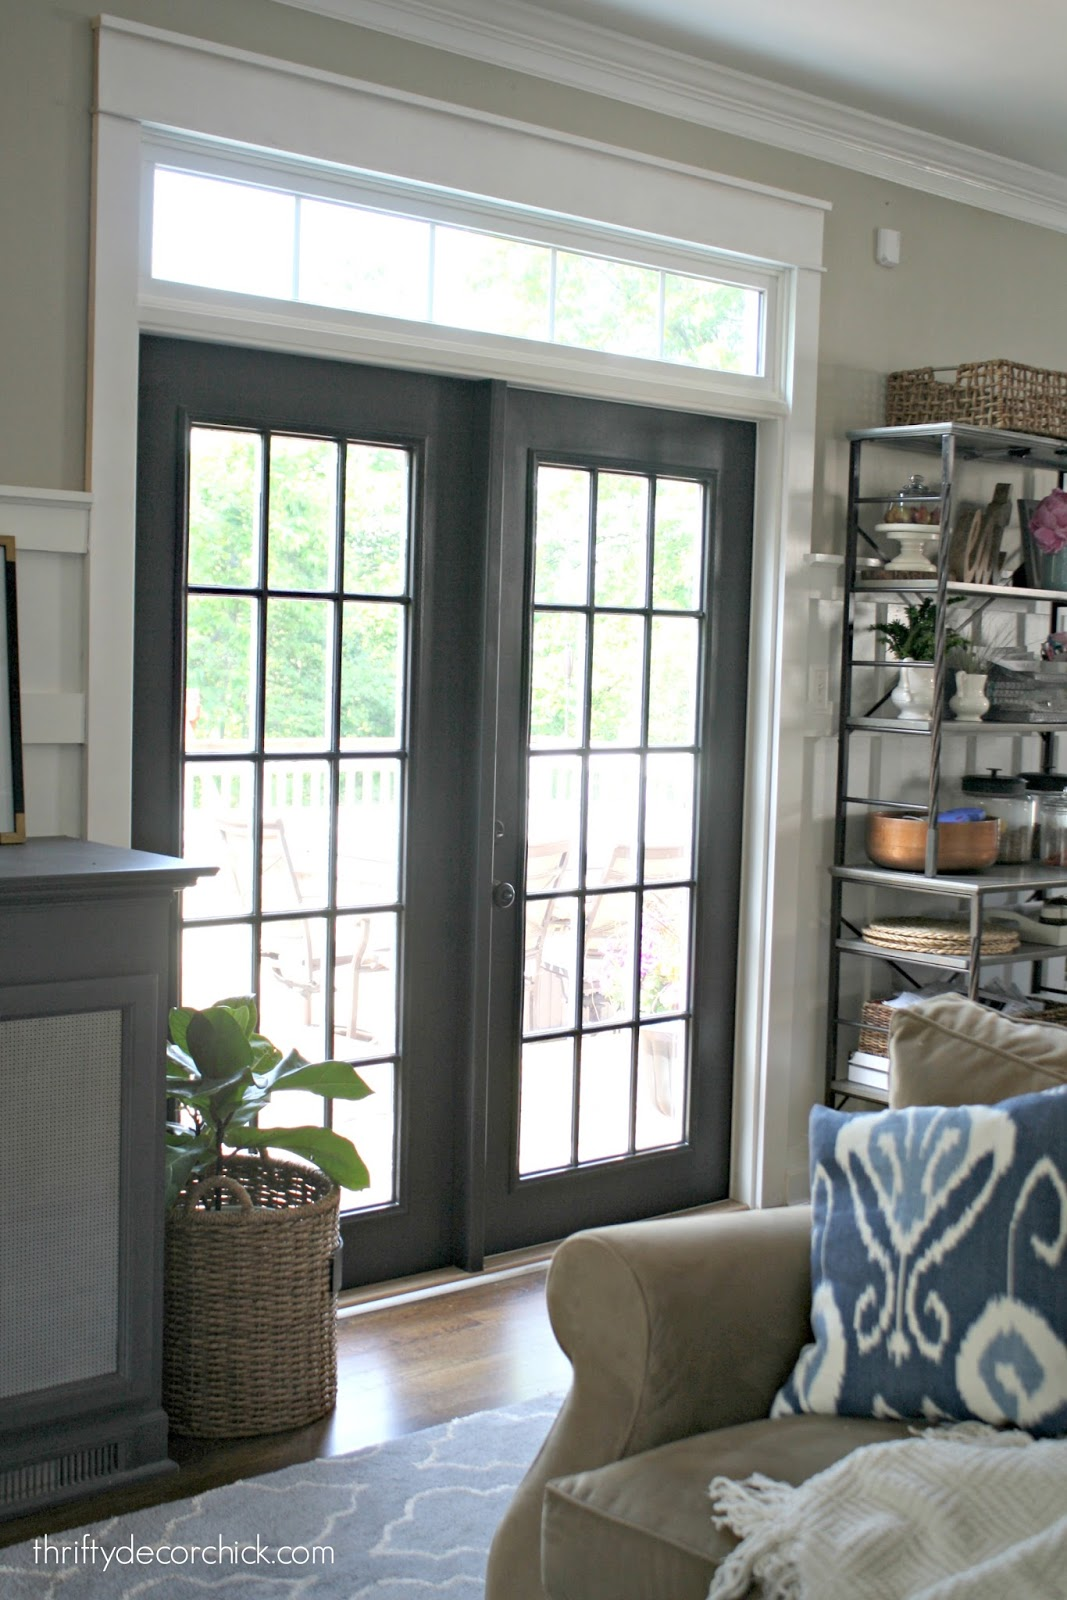 The Curse of the Back Door from Thrifty Decor Chick